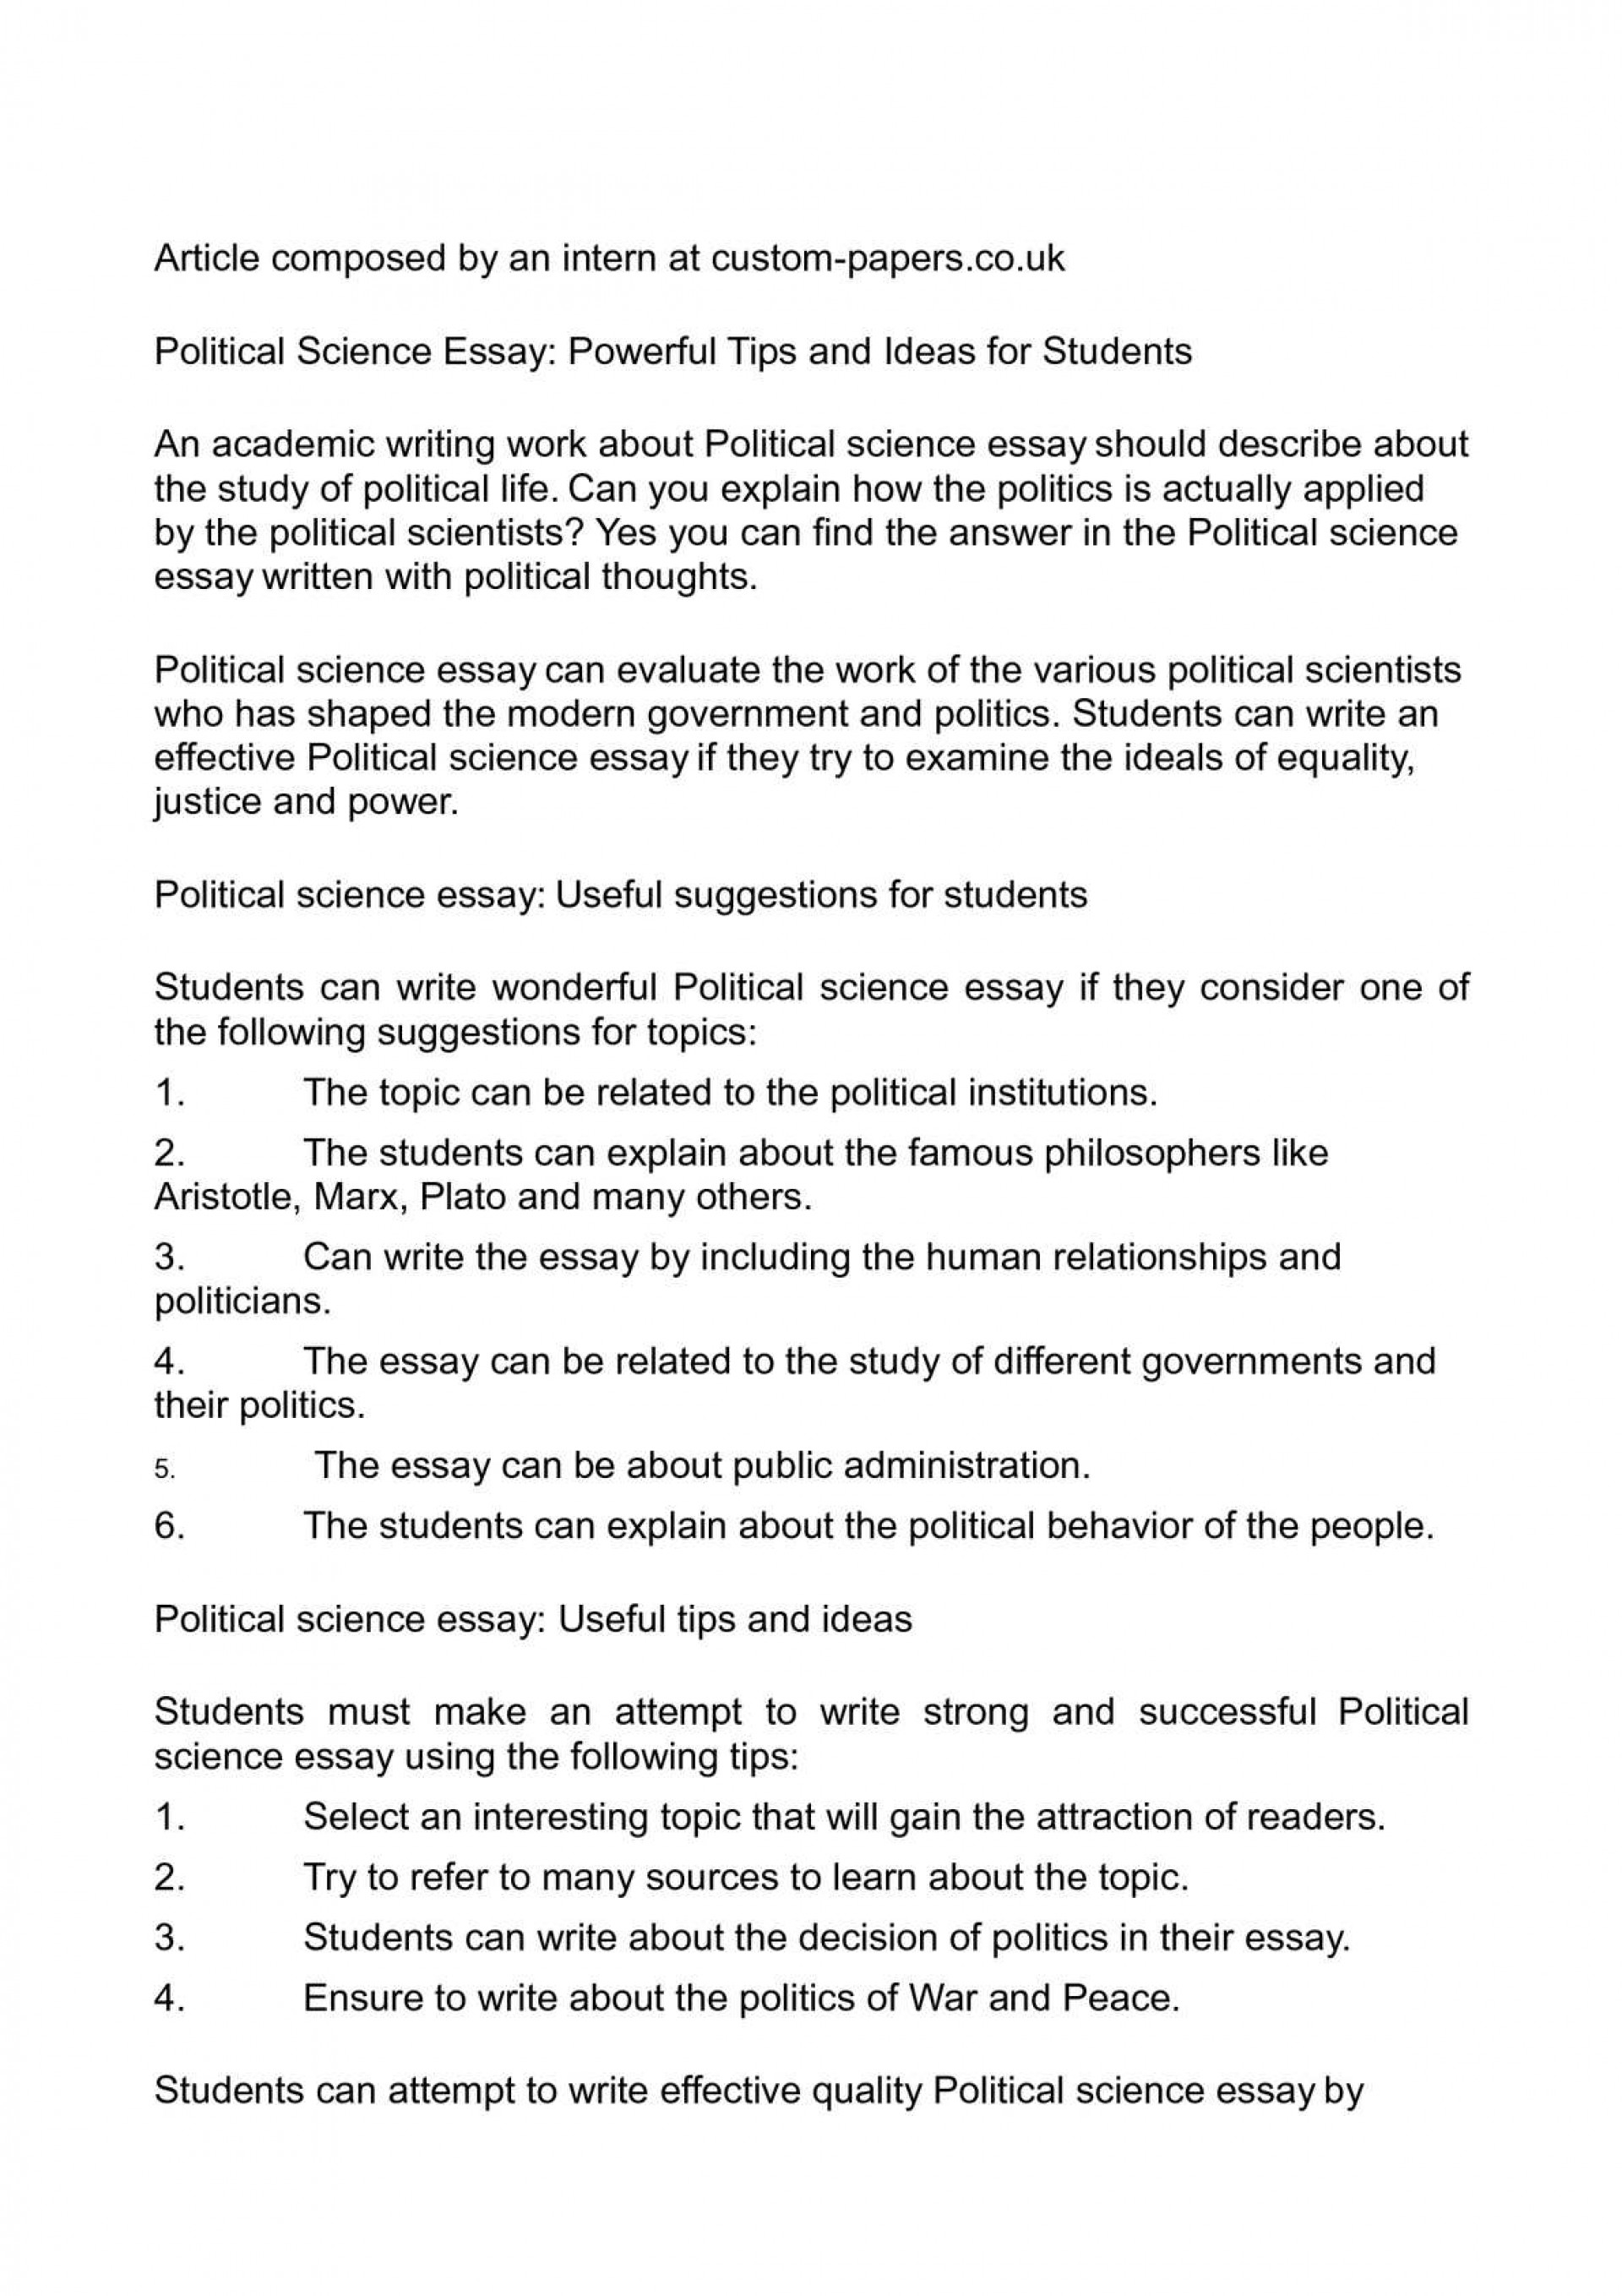 023 Research Paper P1 Political Science Essay Archaicawful Topics 2014 101 1920